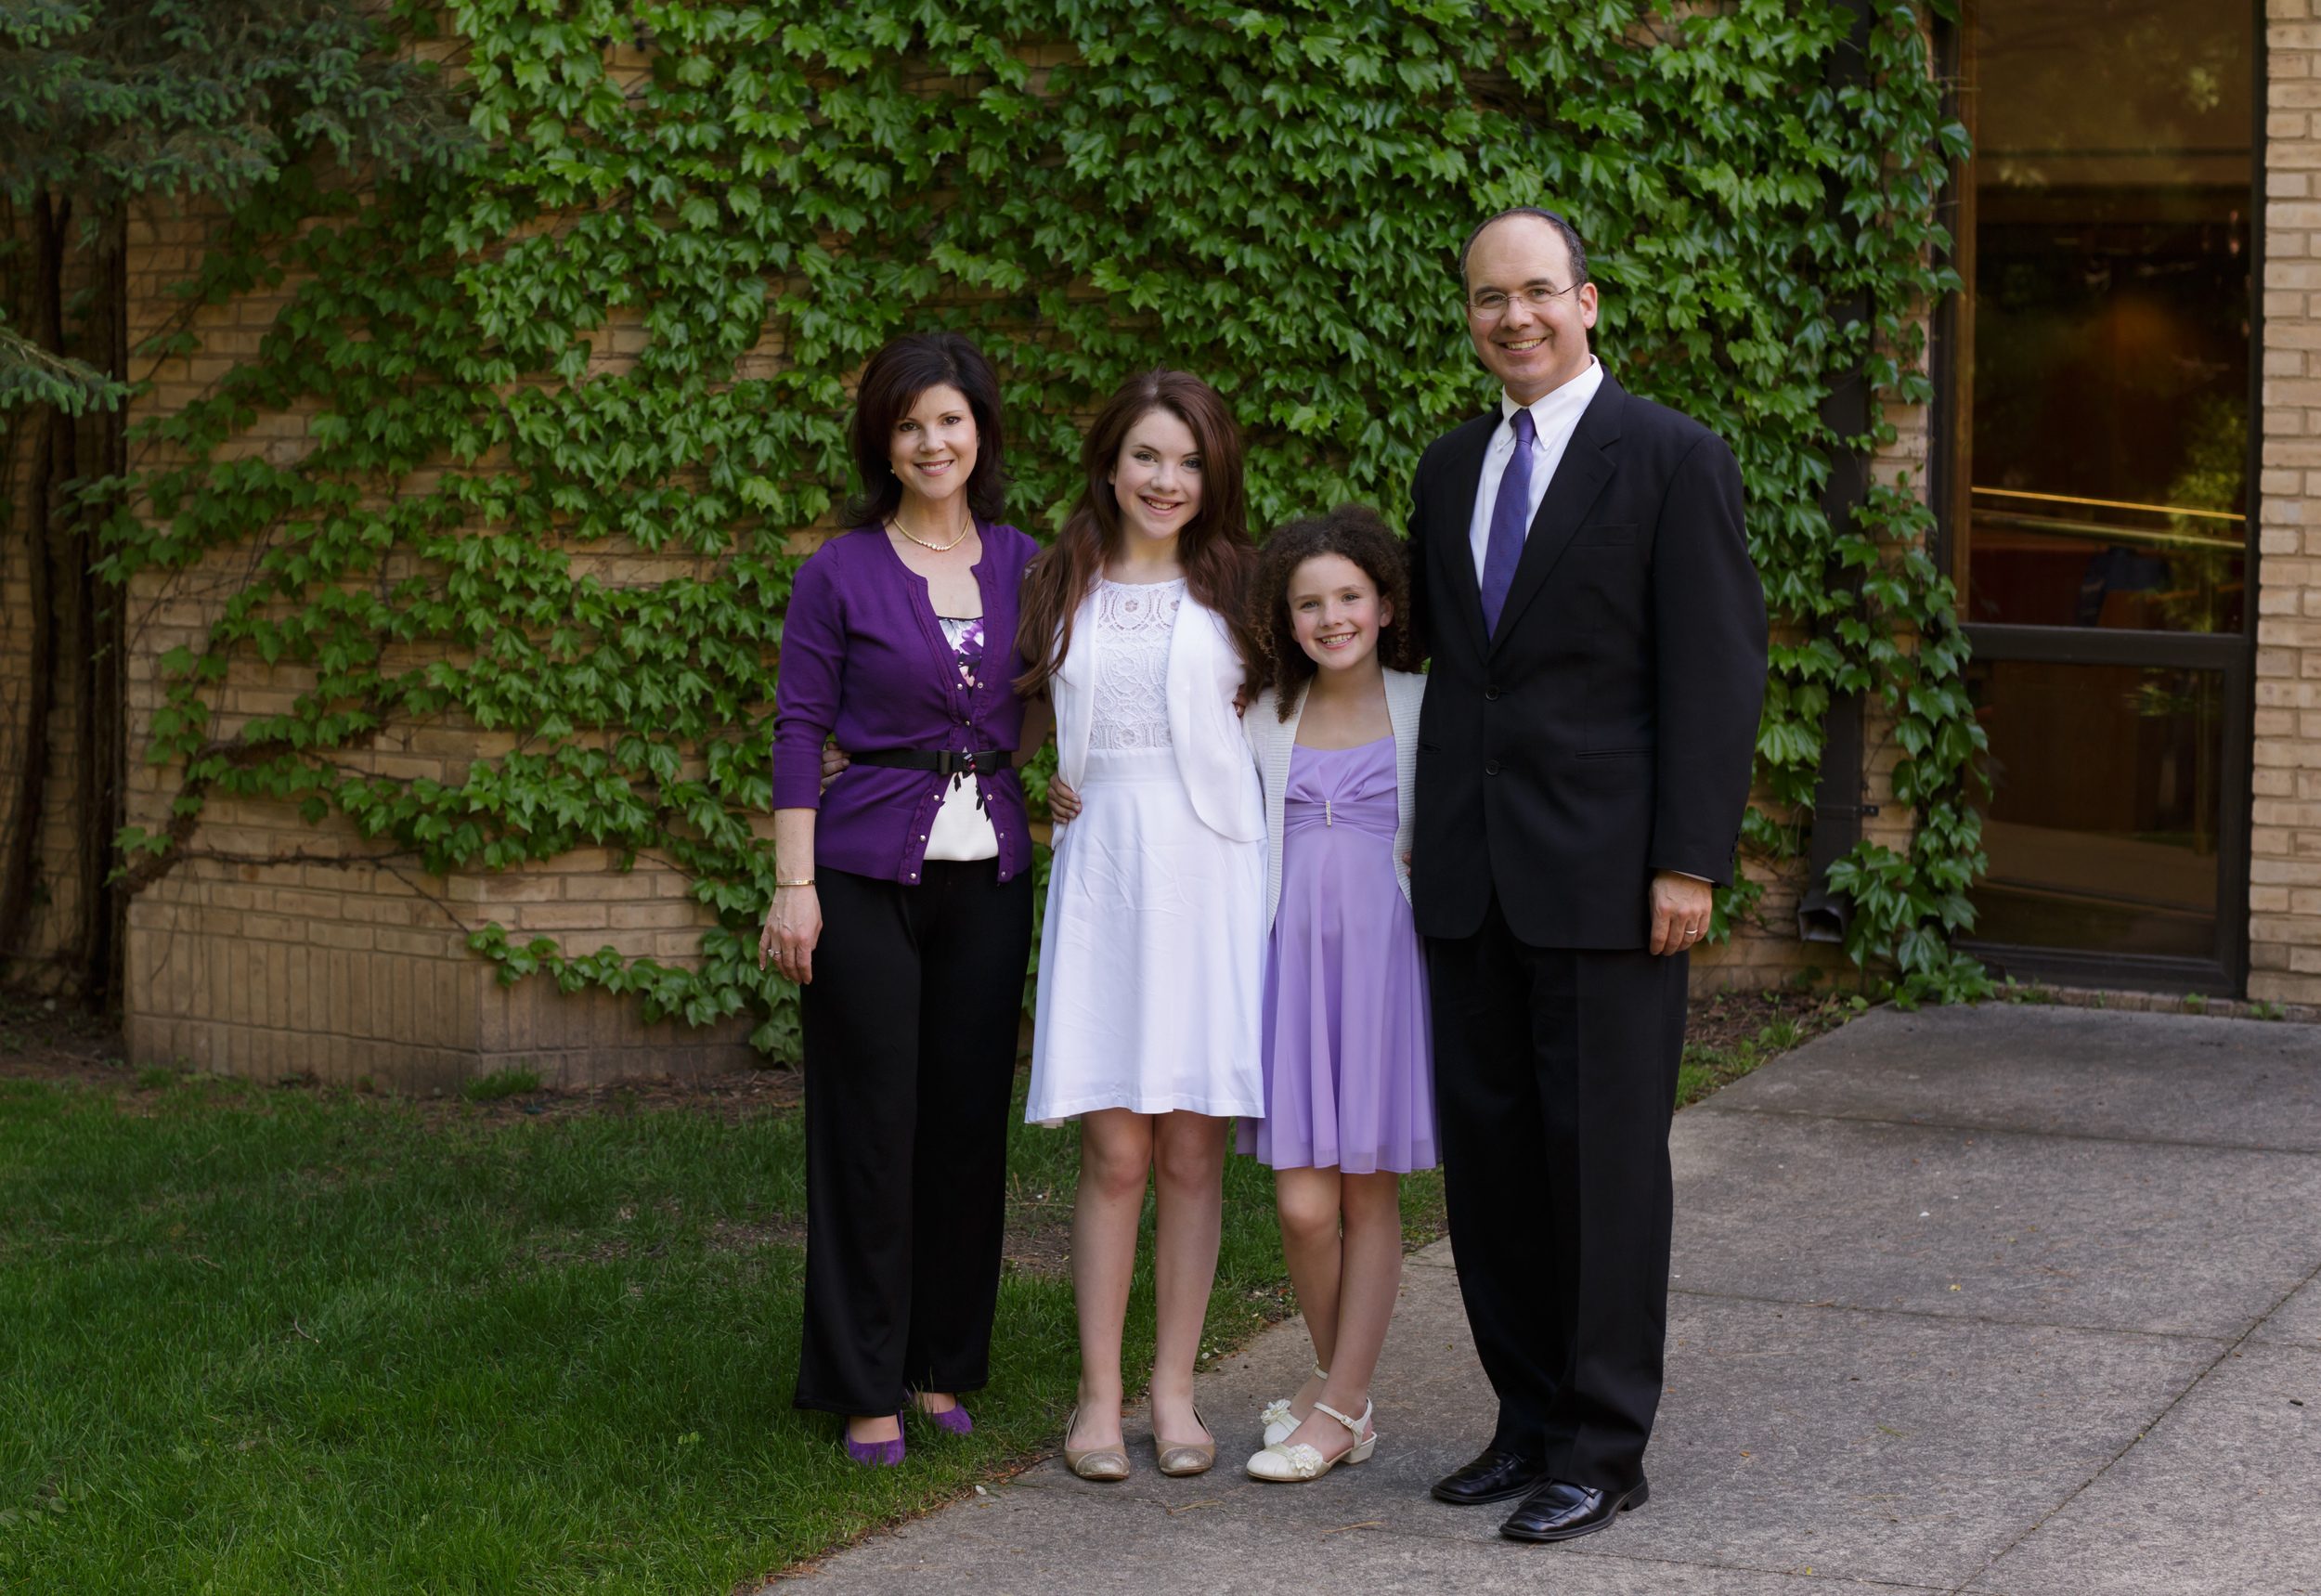 Lily_Ann_Arbor_Bat_Mitzvah_photography_05